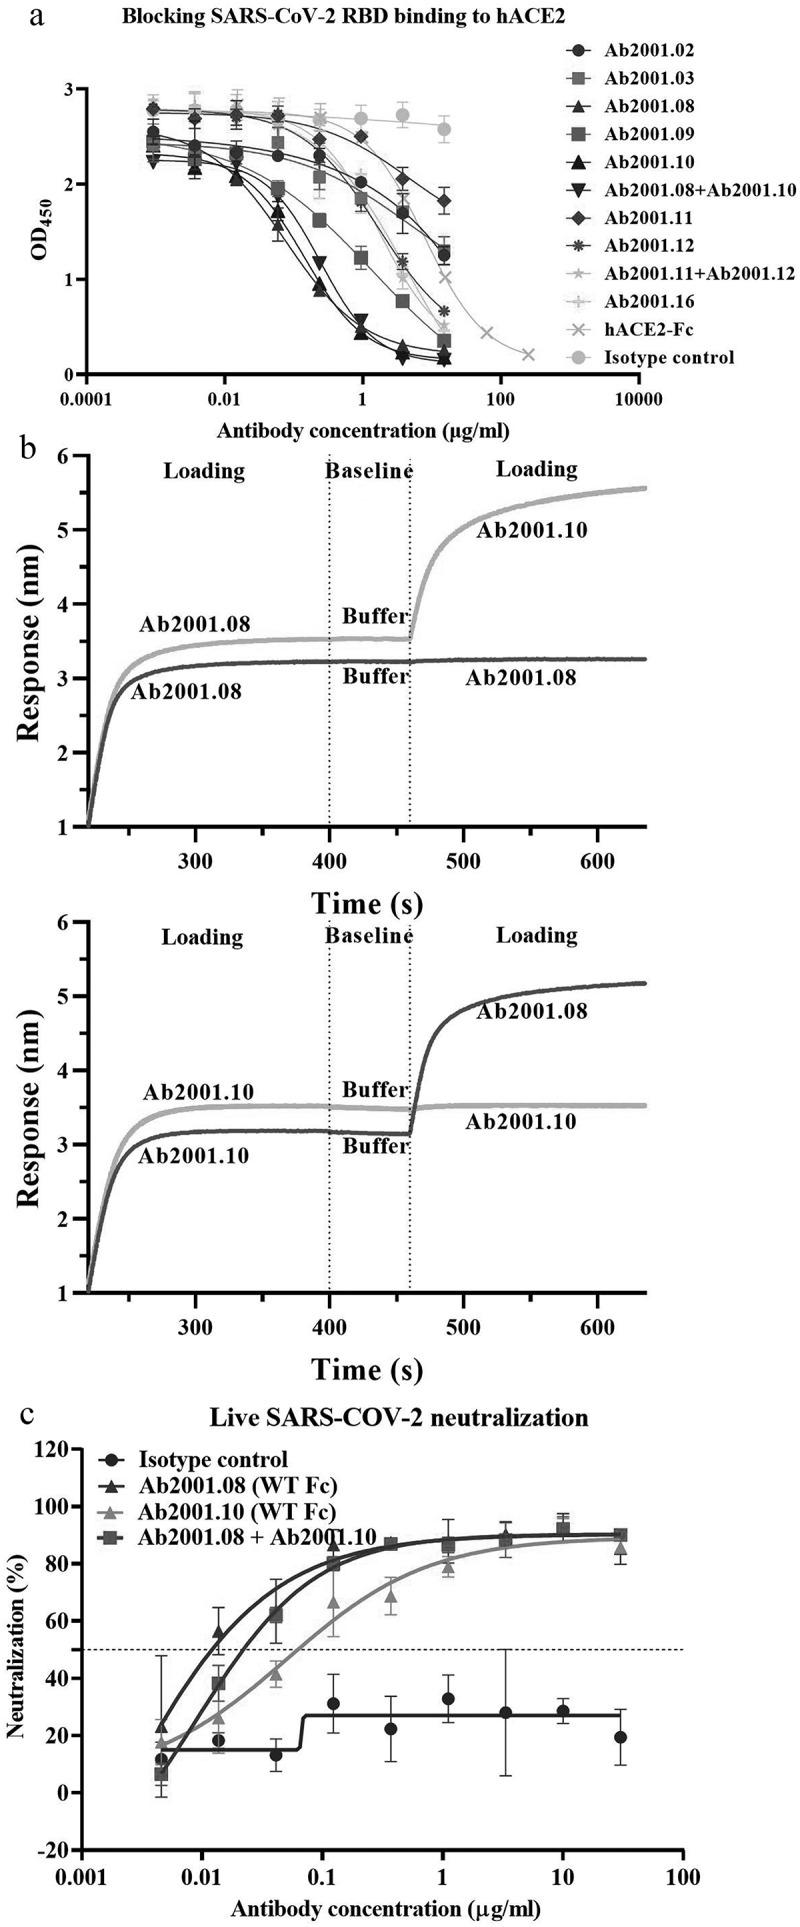 Characterization of potential blocking antibodies. (a) Blocking assay was performed by immobilizing 1 µg/ml hACE2 on a plate. Serially diluted antibodies and biotinylated SARS-CoV-2 RBD protein were added for competitive binding to hACE2. IC 50 values were calculated with Prism V8.0 software using a four-parameter logistic curve fitting approach. (b) Epitope binning was carried out by BLI. Biotinylated SARS-CoV-2 RBD was immobilized onto the SA sensor, and a high concentration of the primary antibody was used to saturate its own binding site. Subsequently, a second antibody was applied to compete for the binding site on the SARS-CoV-2 RBD protein. Data were analyzed with Octet Data Analysis HT 11.0 software. (c) Neutralization activities of Ab2001.08 and Ab2001.10 were assessed by live virus assay. Live SARS-CoV-2 and serially diluted (3-fold) antibodies were added to VERO E6 cells. The PRNT 50 values were determined by plotting the plaque number (neutralization percentage) against the log antibody concentration in Prism V8.0 software